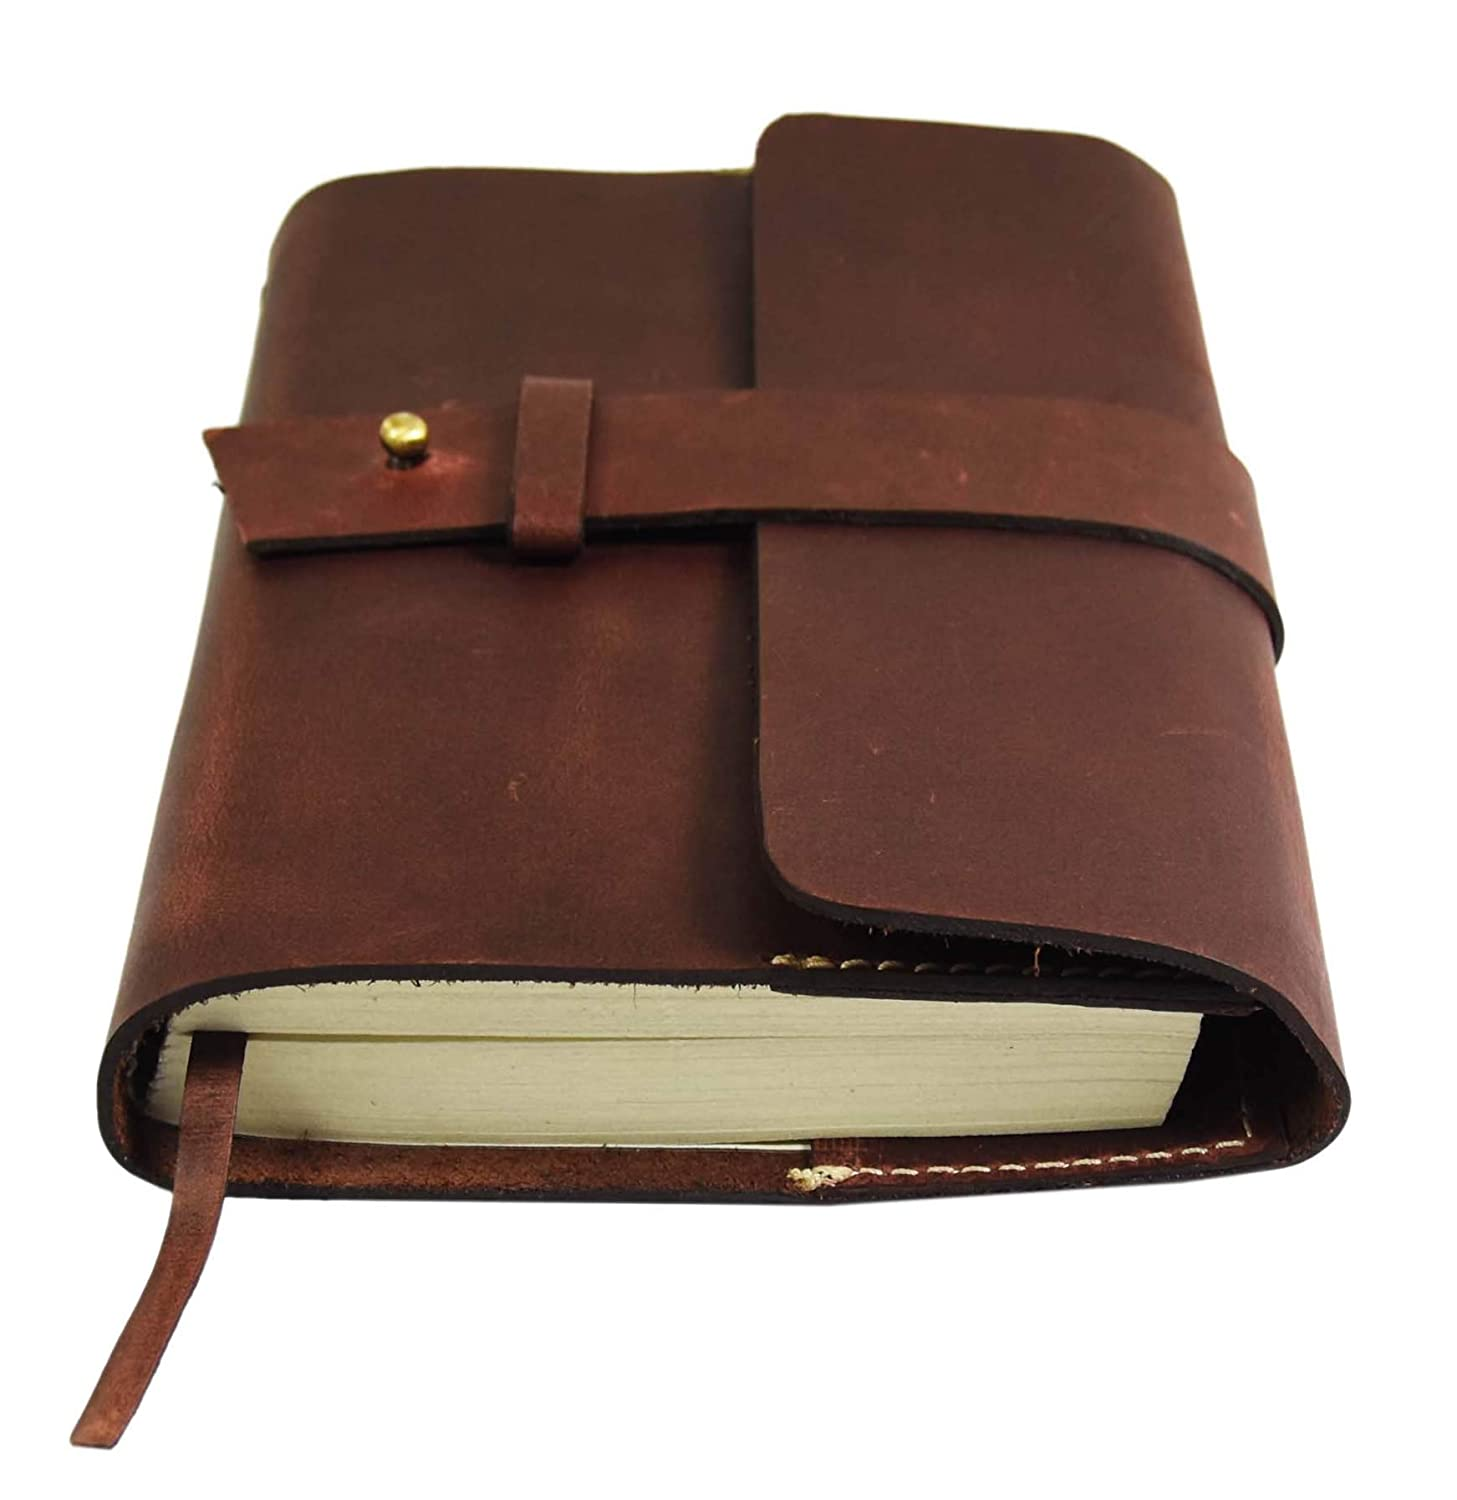 Leather Journal Refillable Writing Notebook-Traveler's Notebook by Aaron Leather Goods (Saddle)